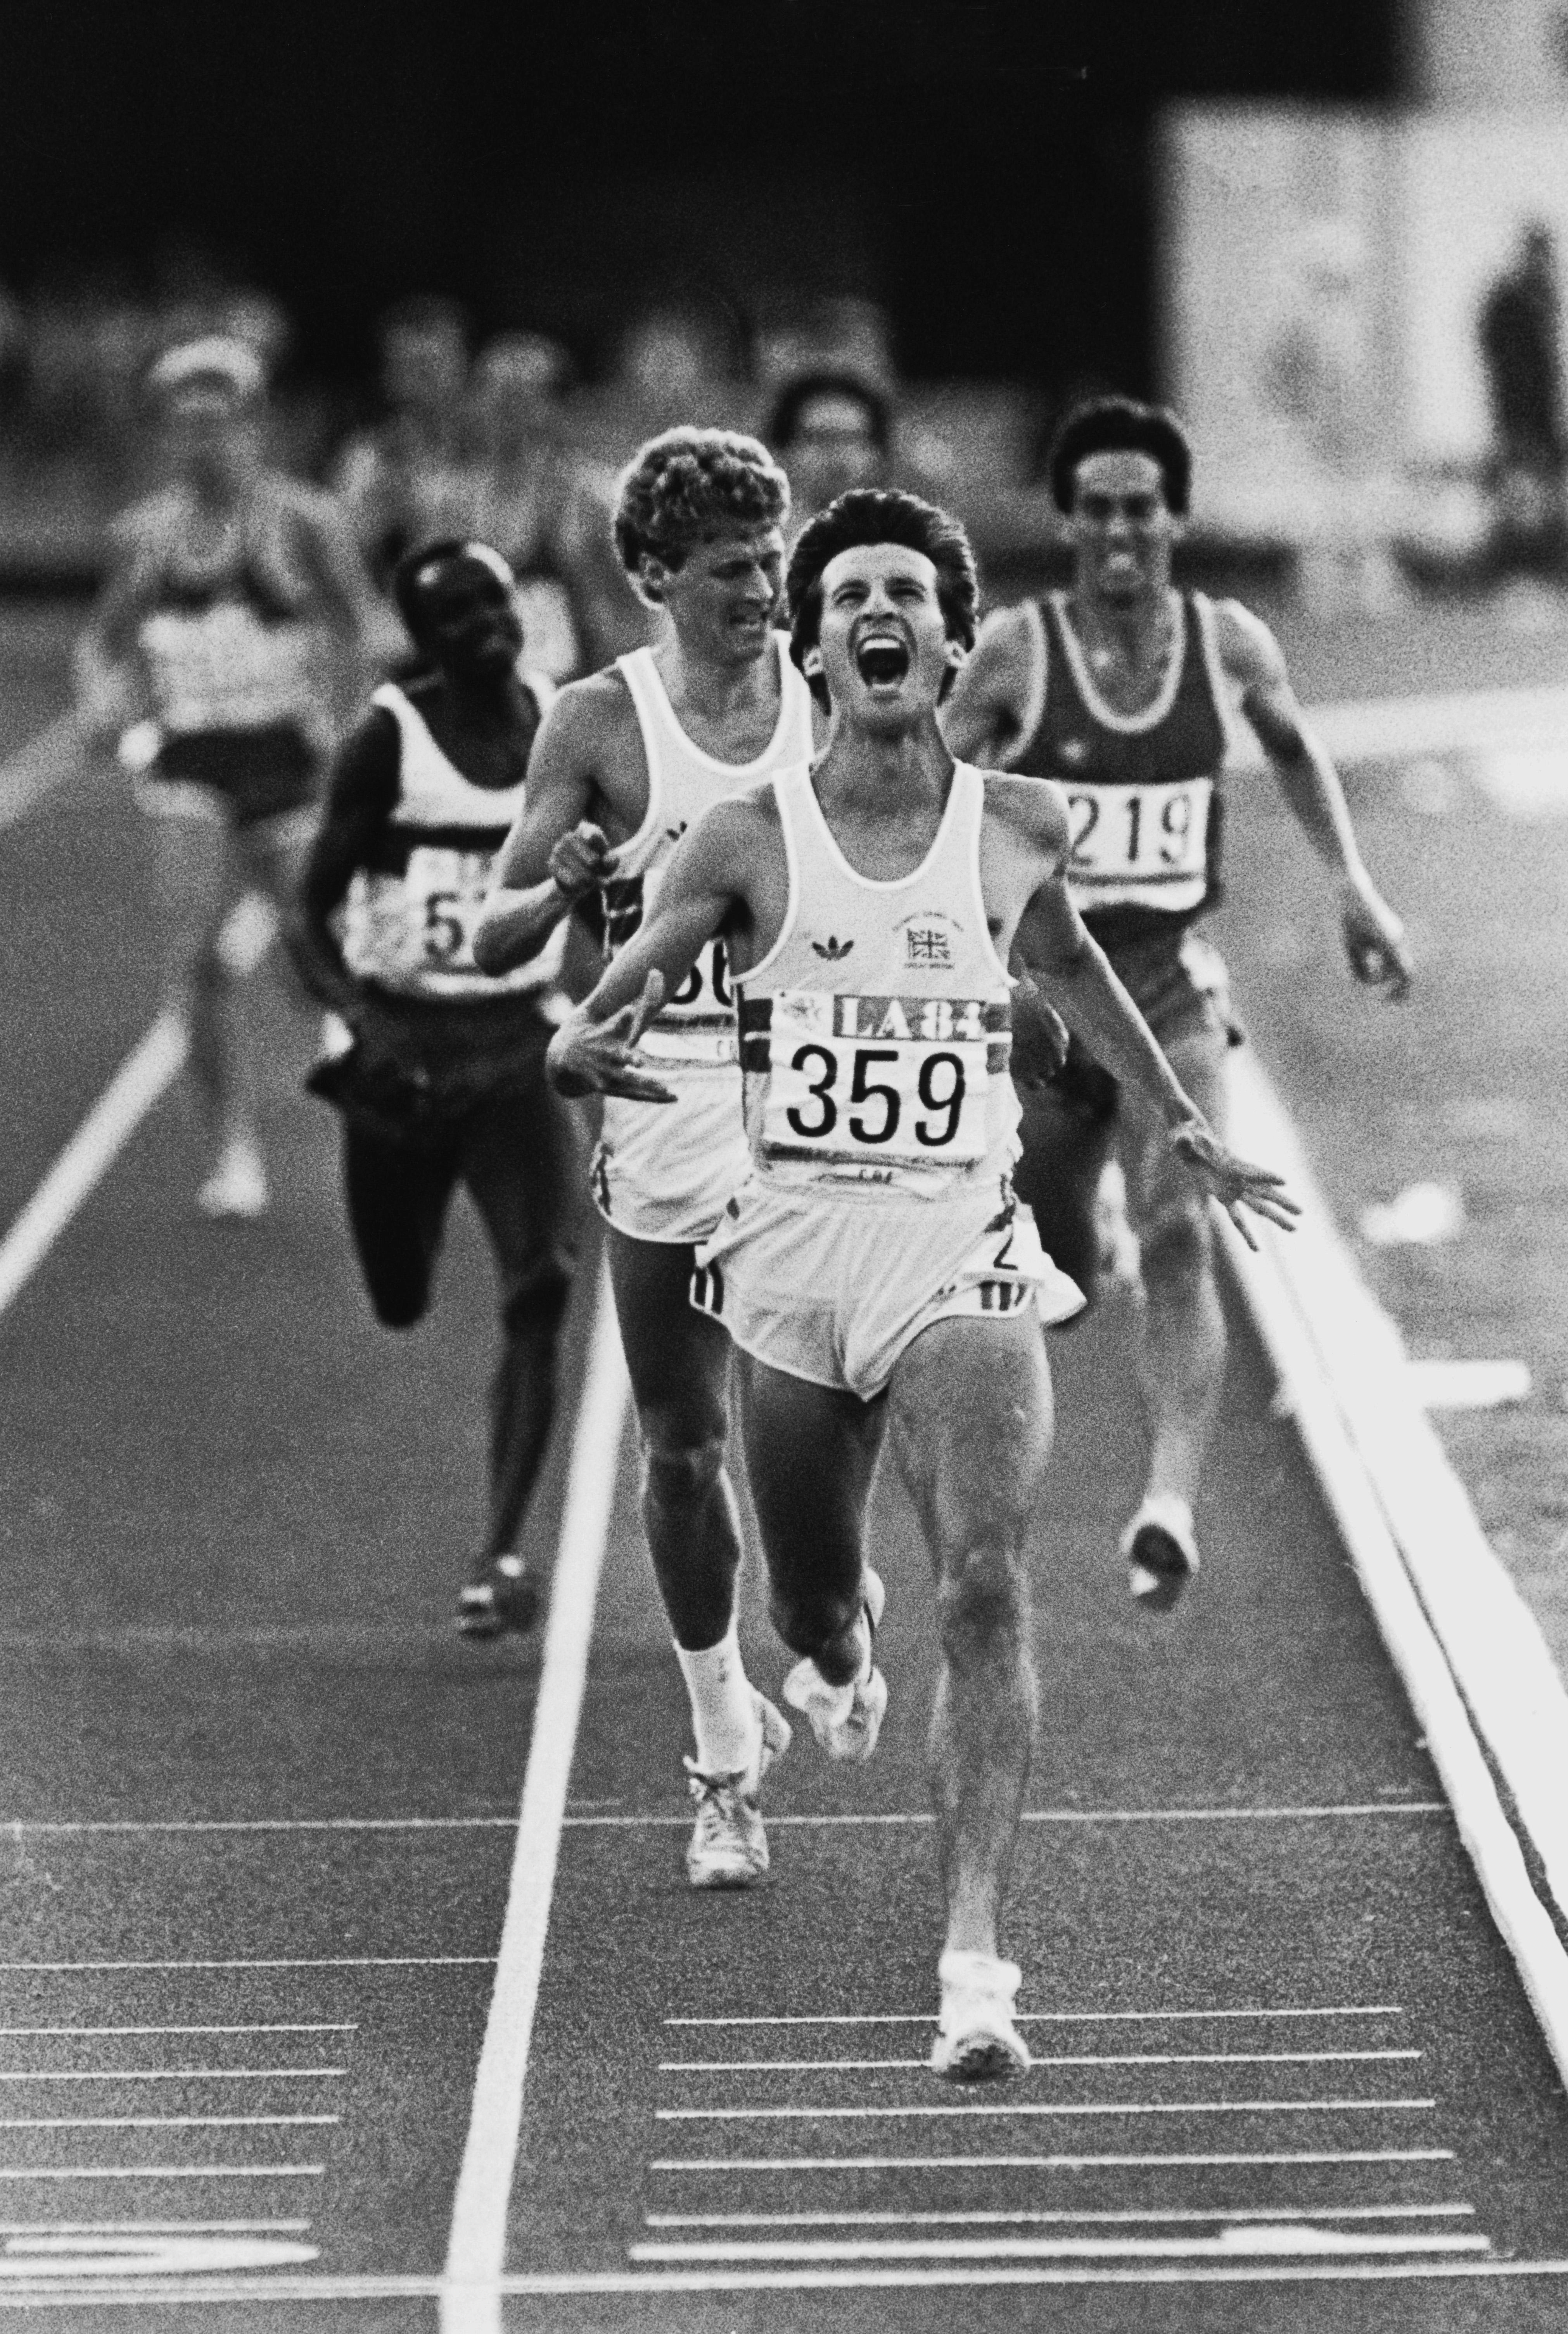 Coe winning the gold medal in the 1500m at the 1984 Olympics